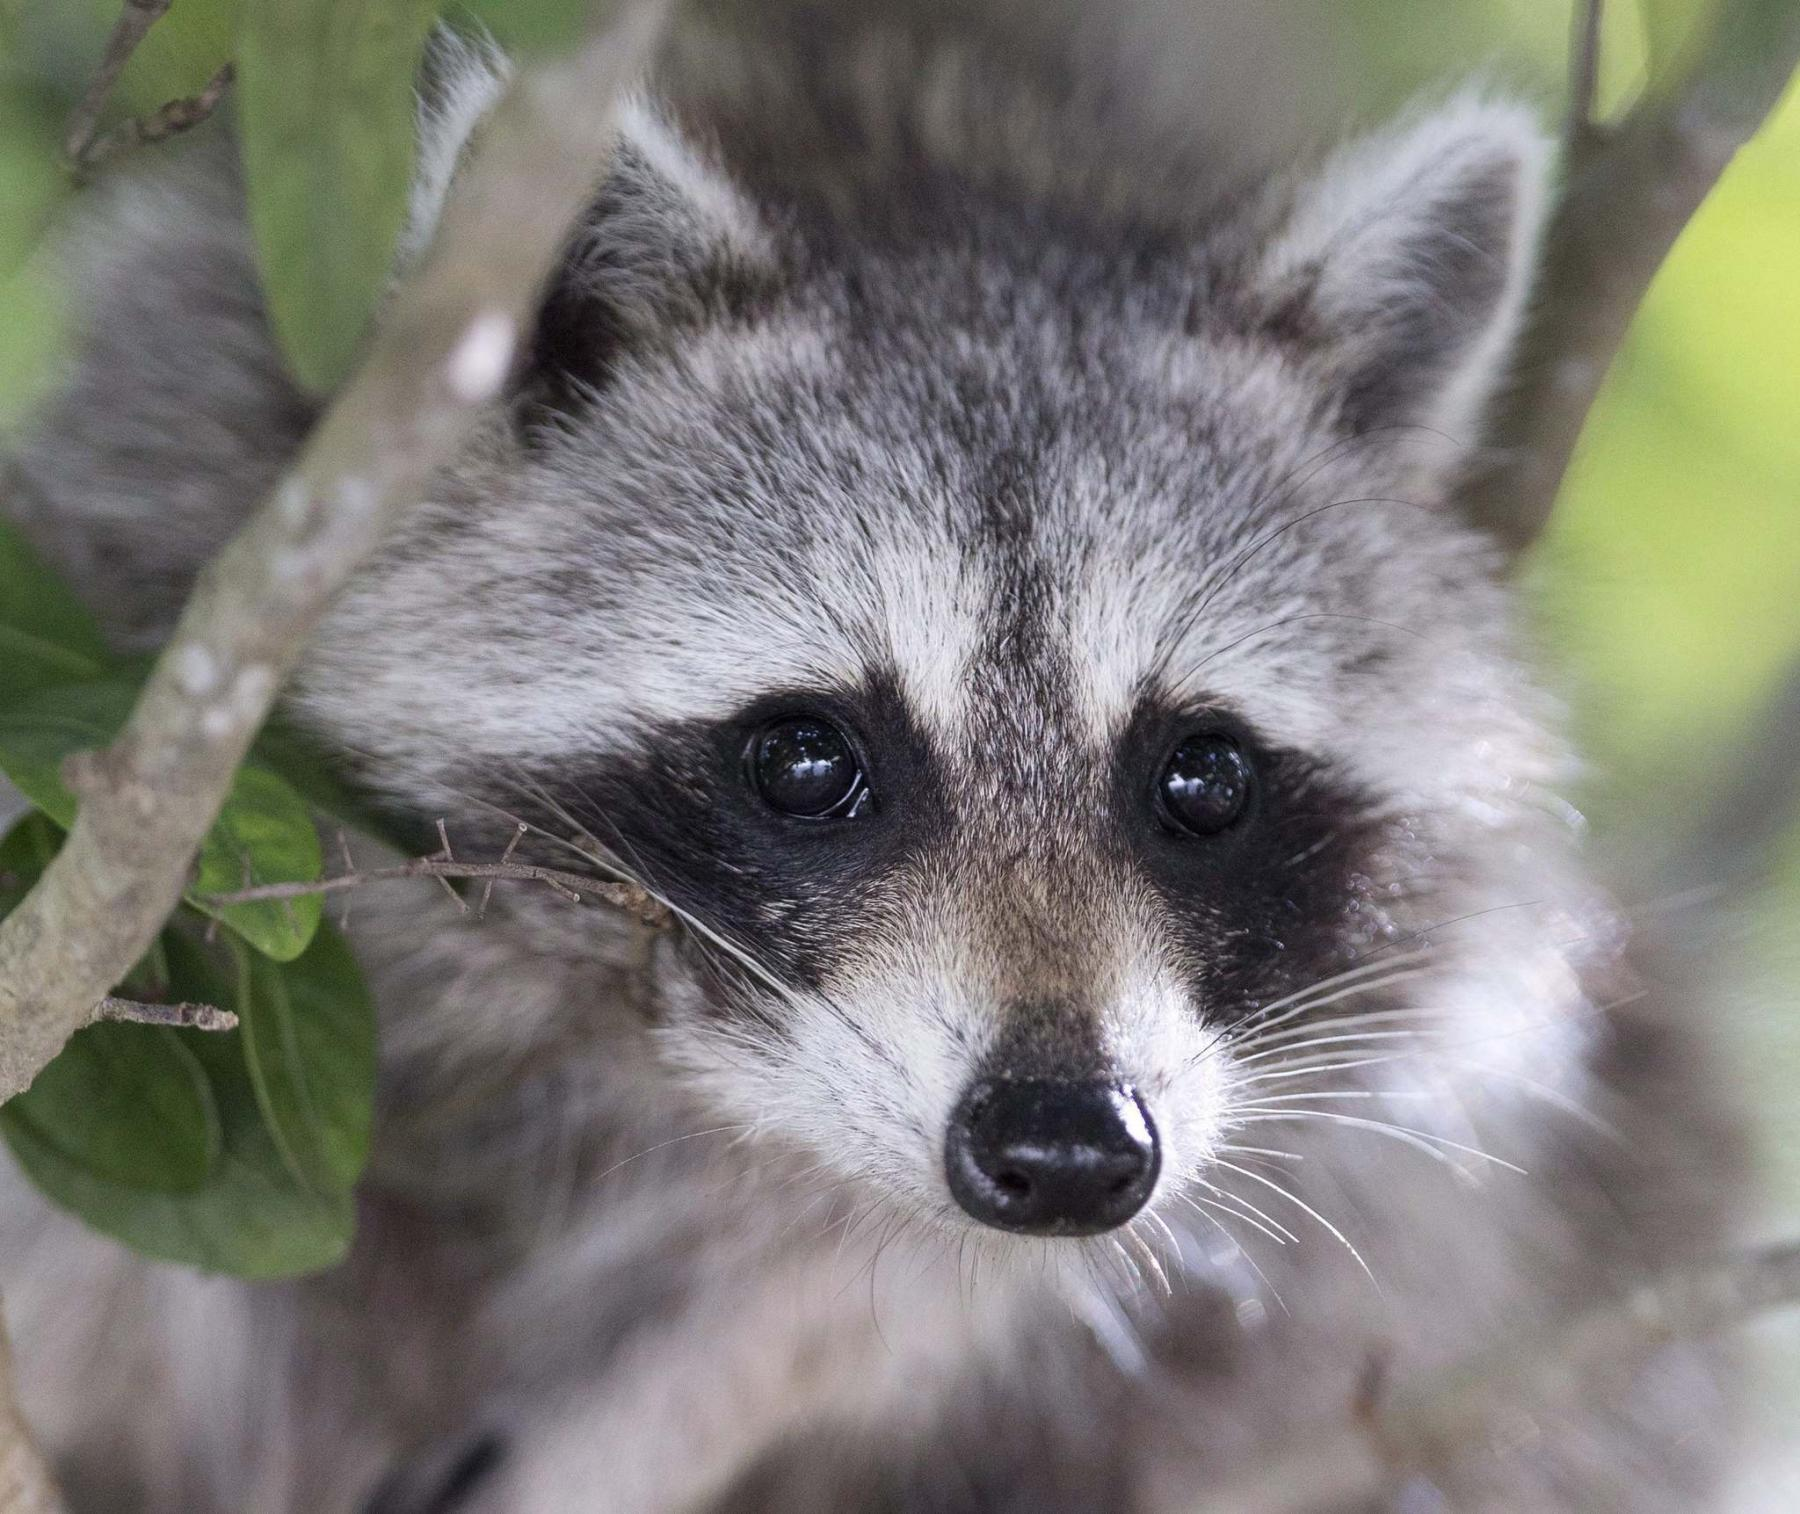 <p>Wilfredo Lee / Canadian Press files</p><p>Raccoons don't like loud noises, so if you make a racket they will probably vacate. </p>